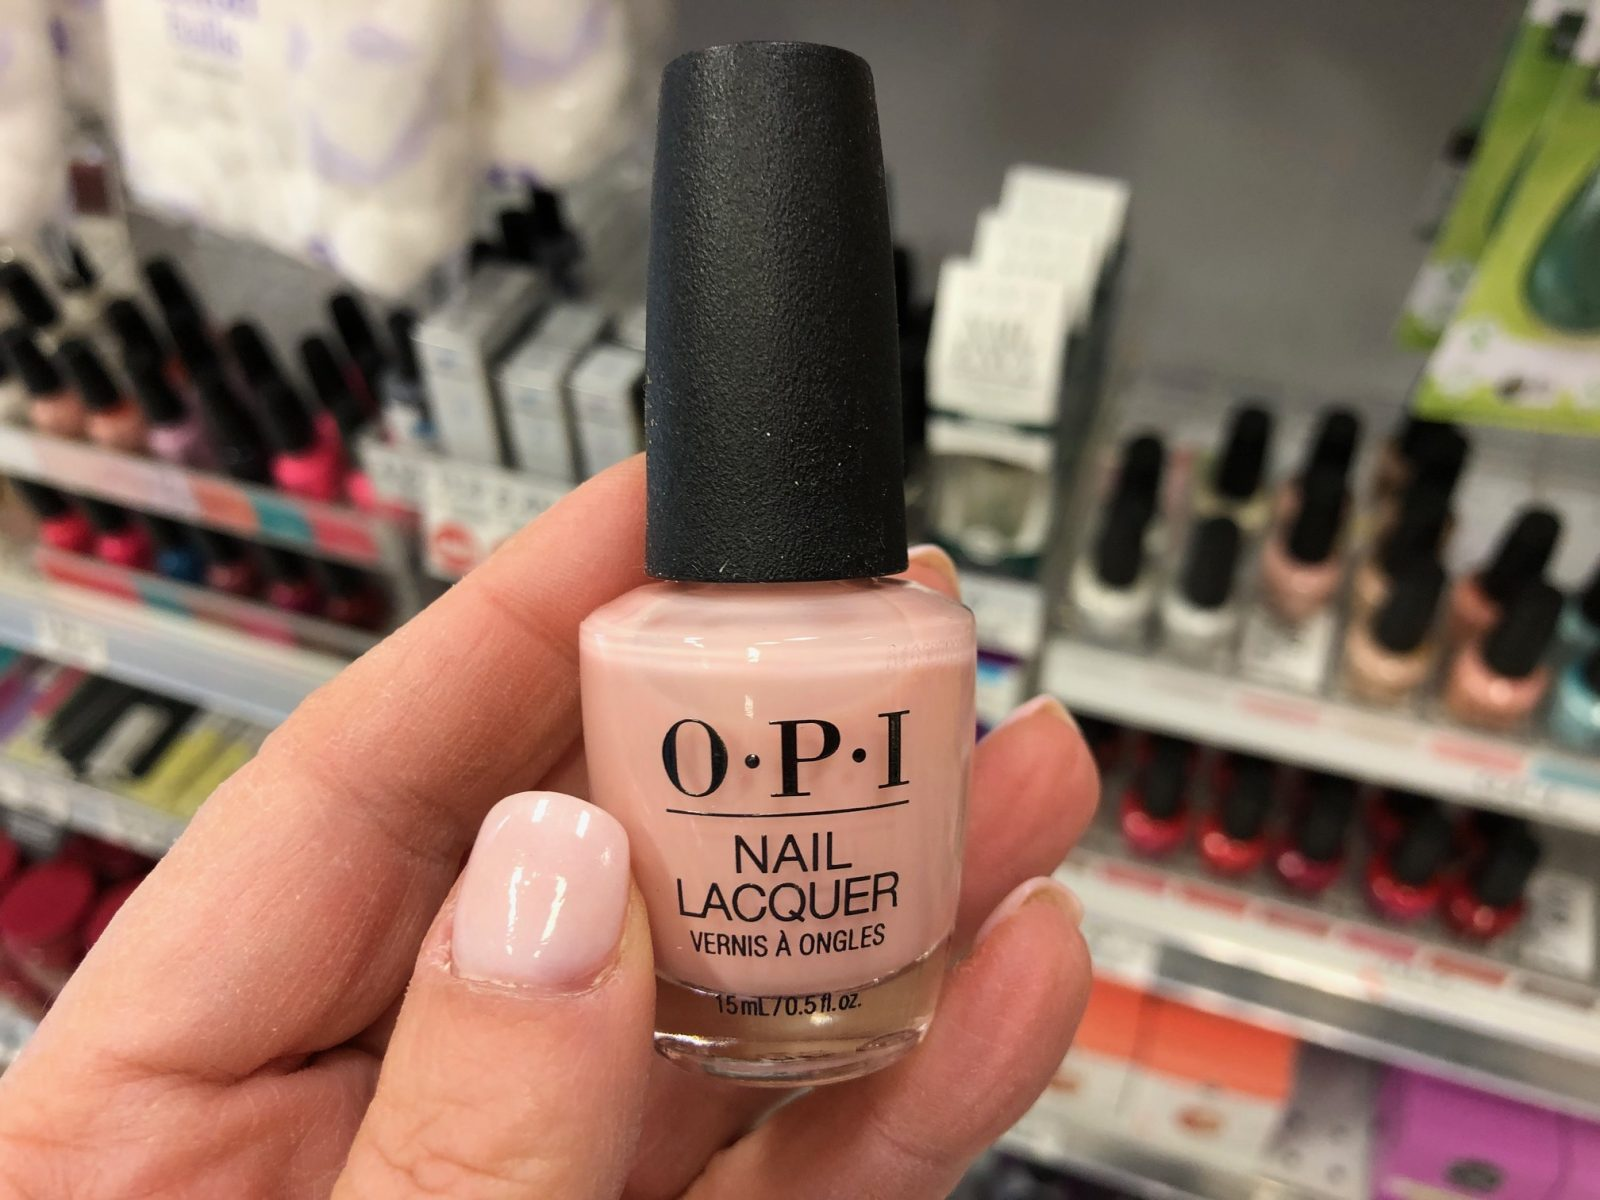 OPI Nail Lacquer Just $4.35 At Publix on I Heart Publix 1